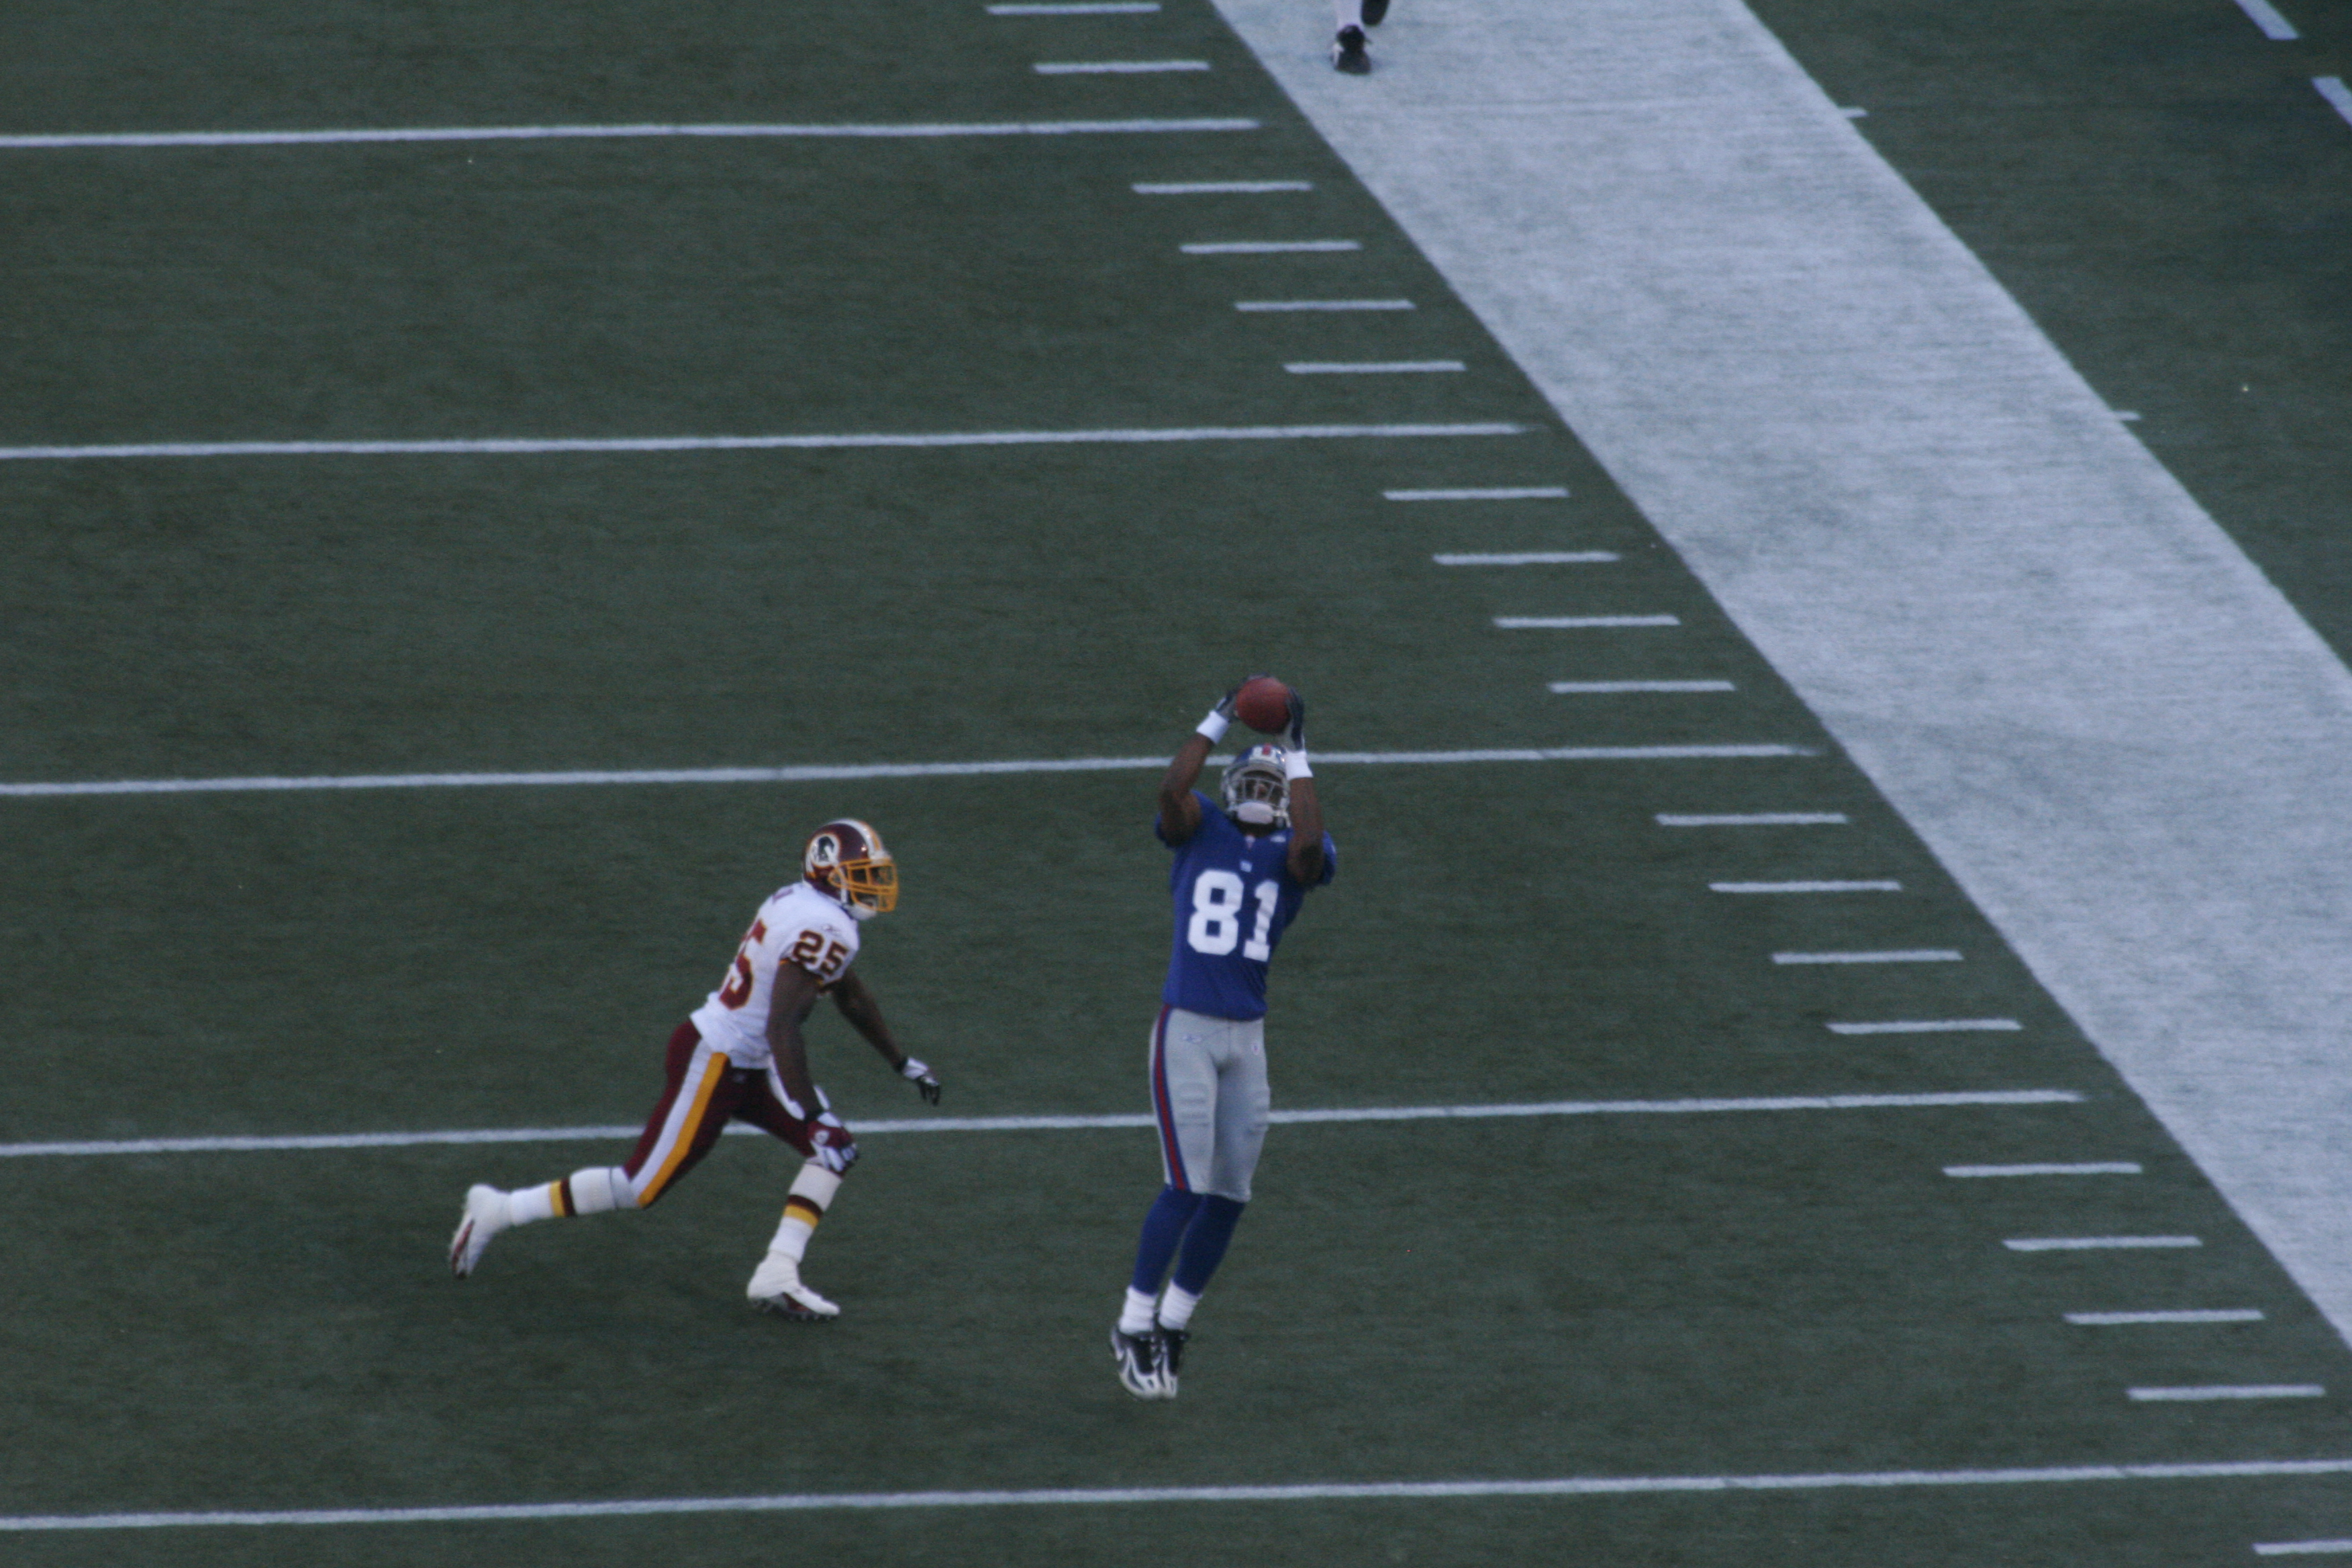 toomer earning his pay giants v redskins author relyea blair